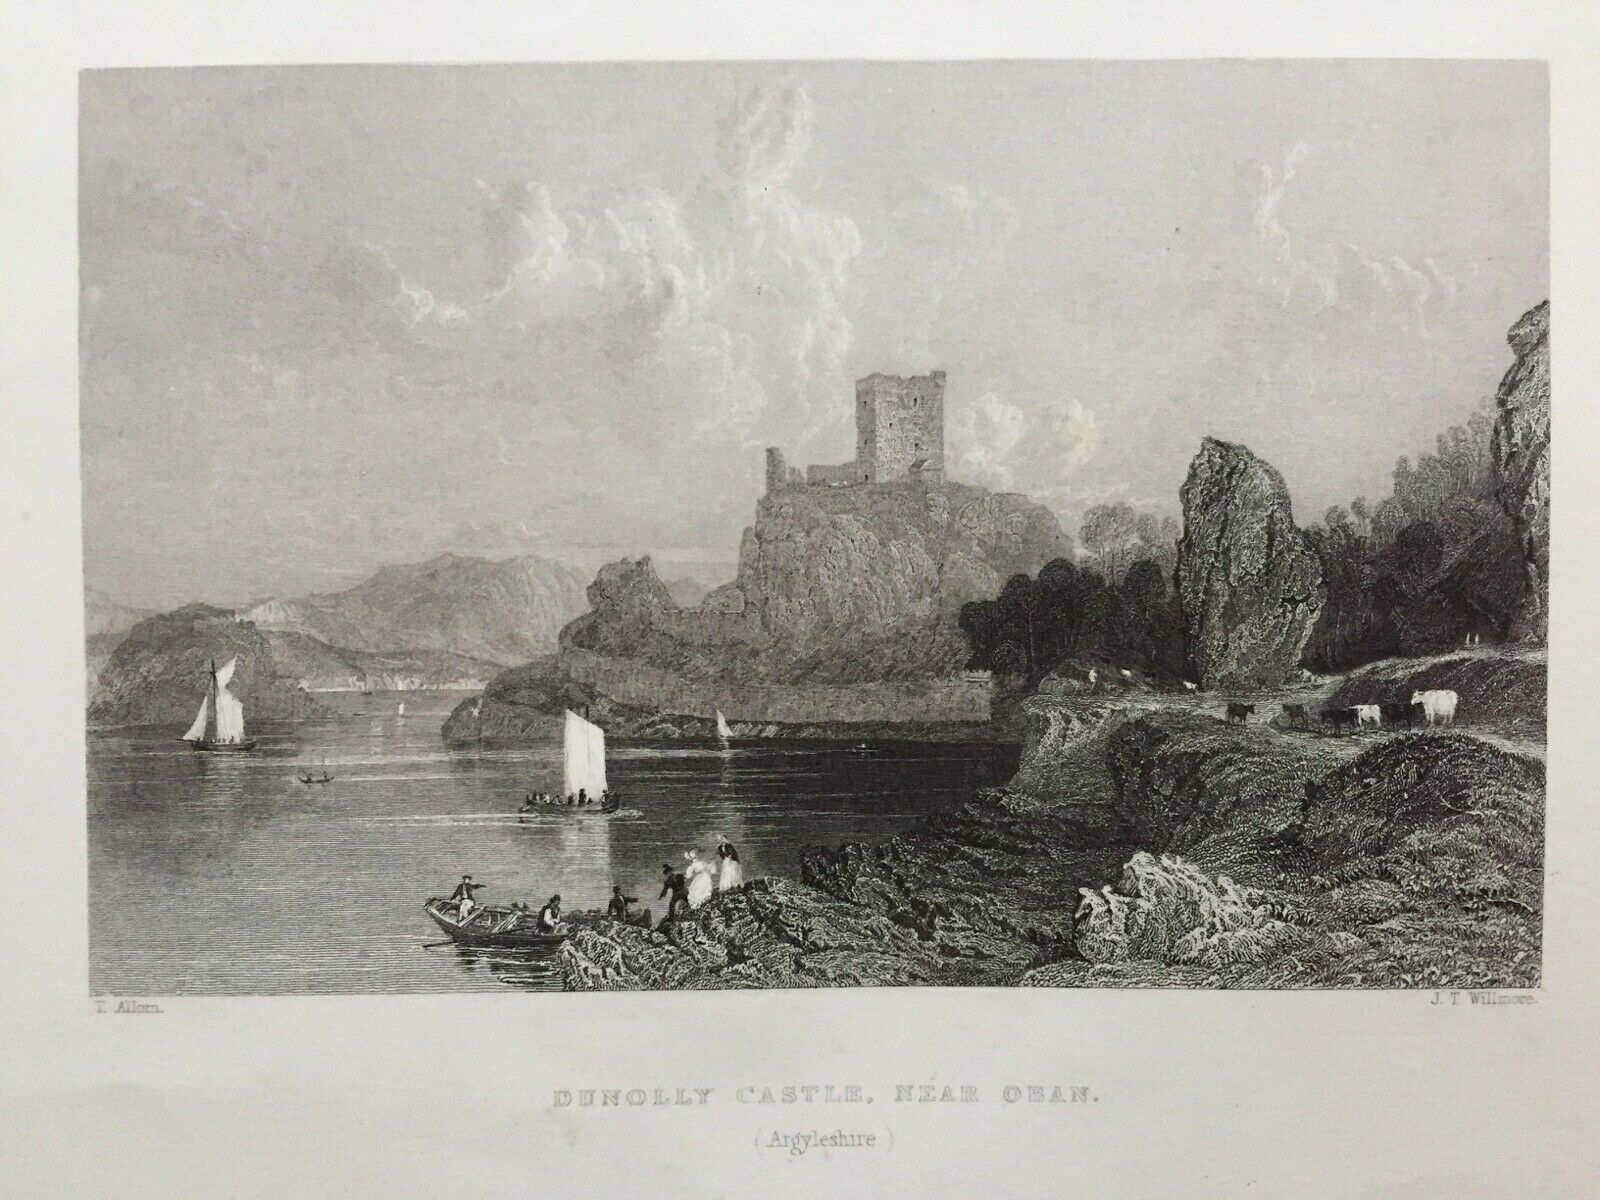 1836-Antique-Print-Dunollie-Castle-near-Oban-Argyll.jpg